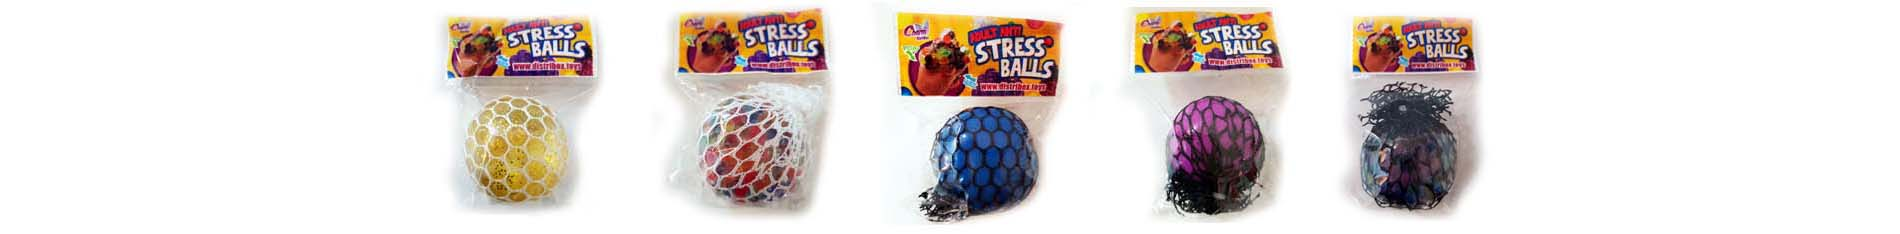 Colección Pelotas Anti Stress Balls Distribox